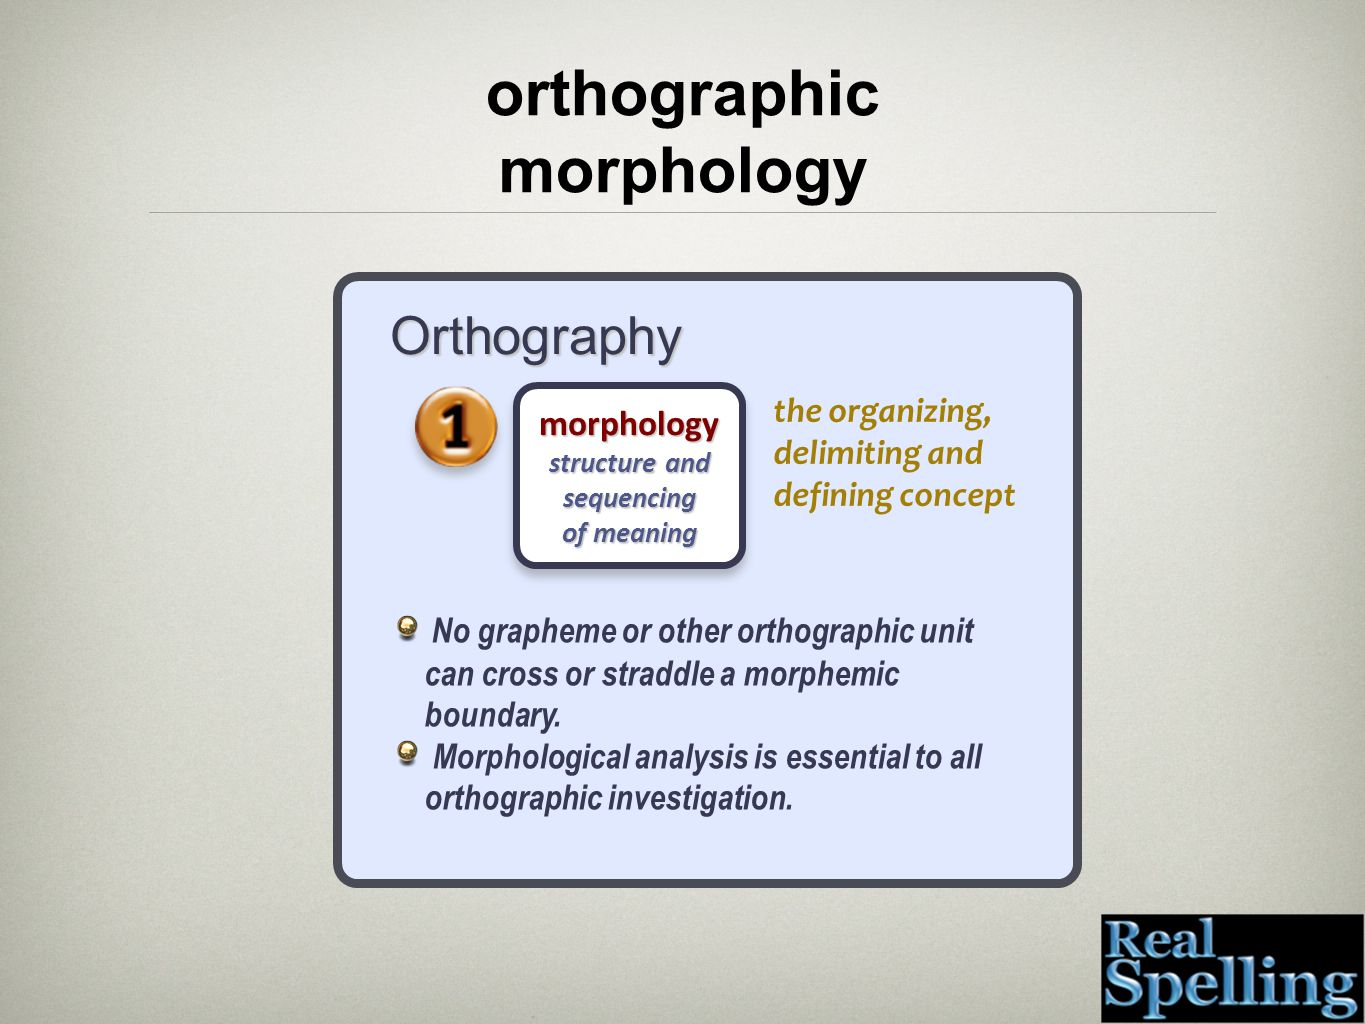 morphology structure and sequencing